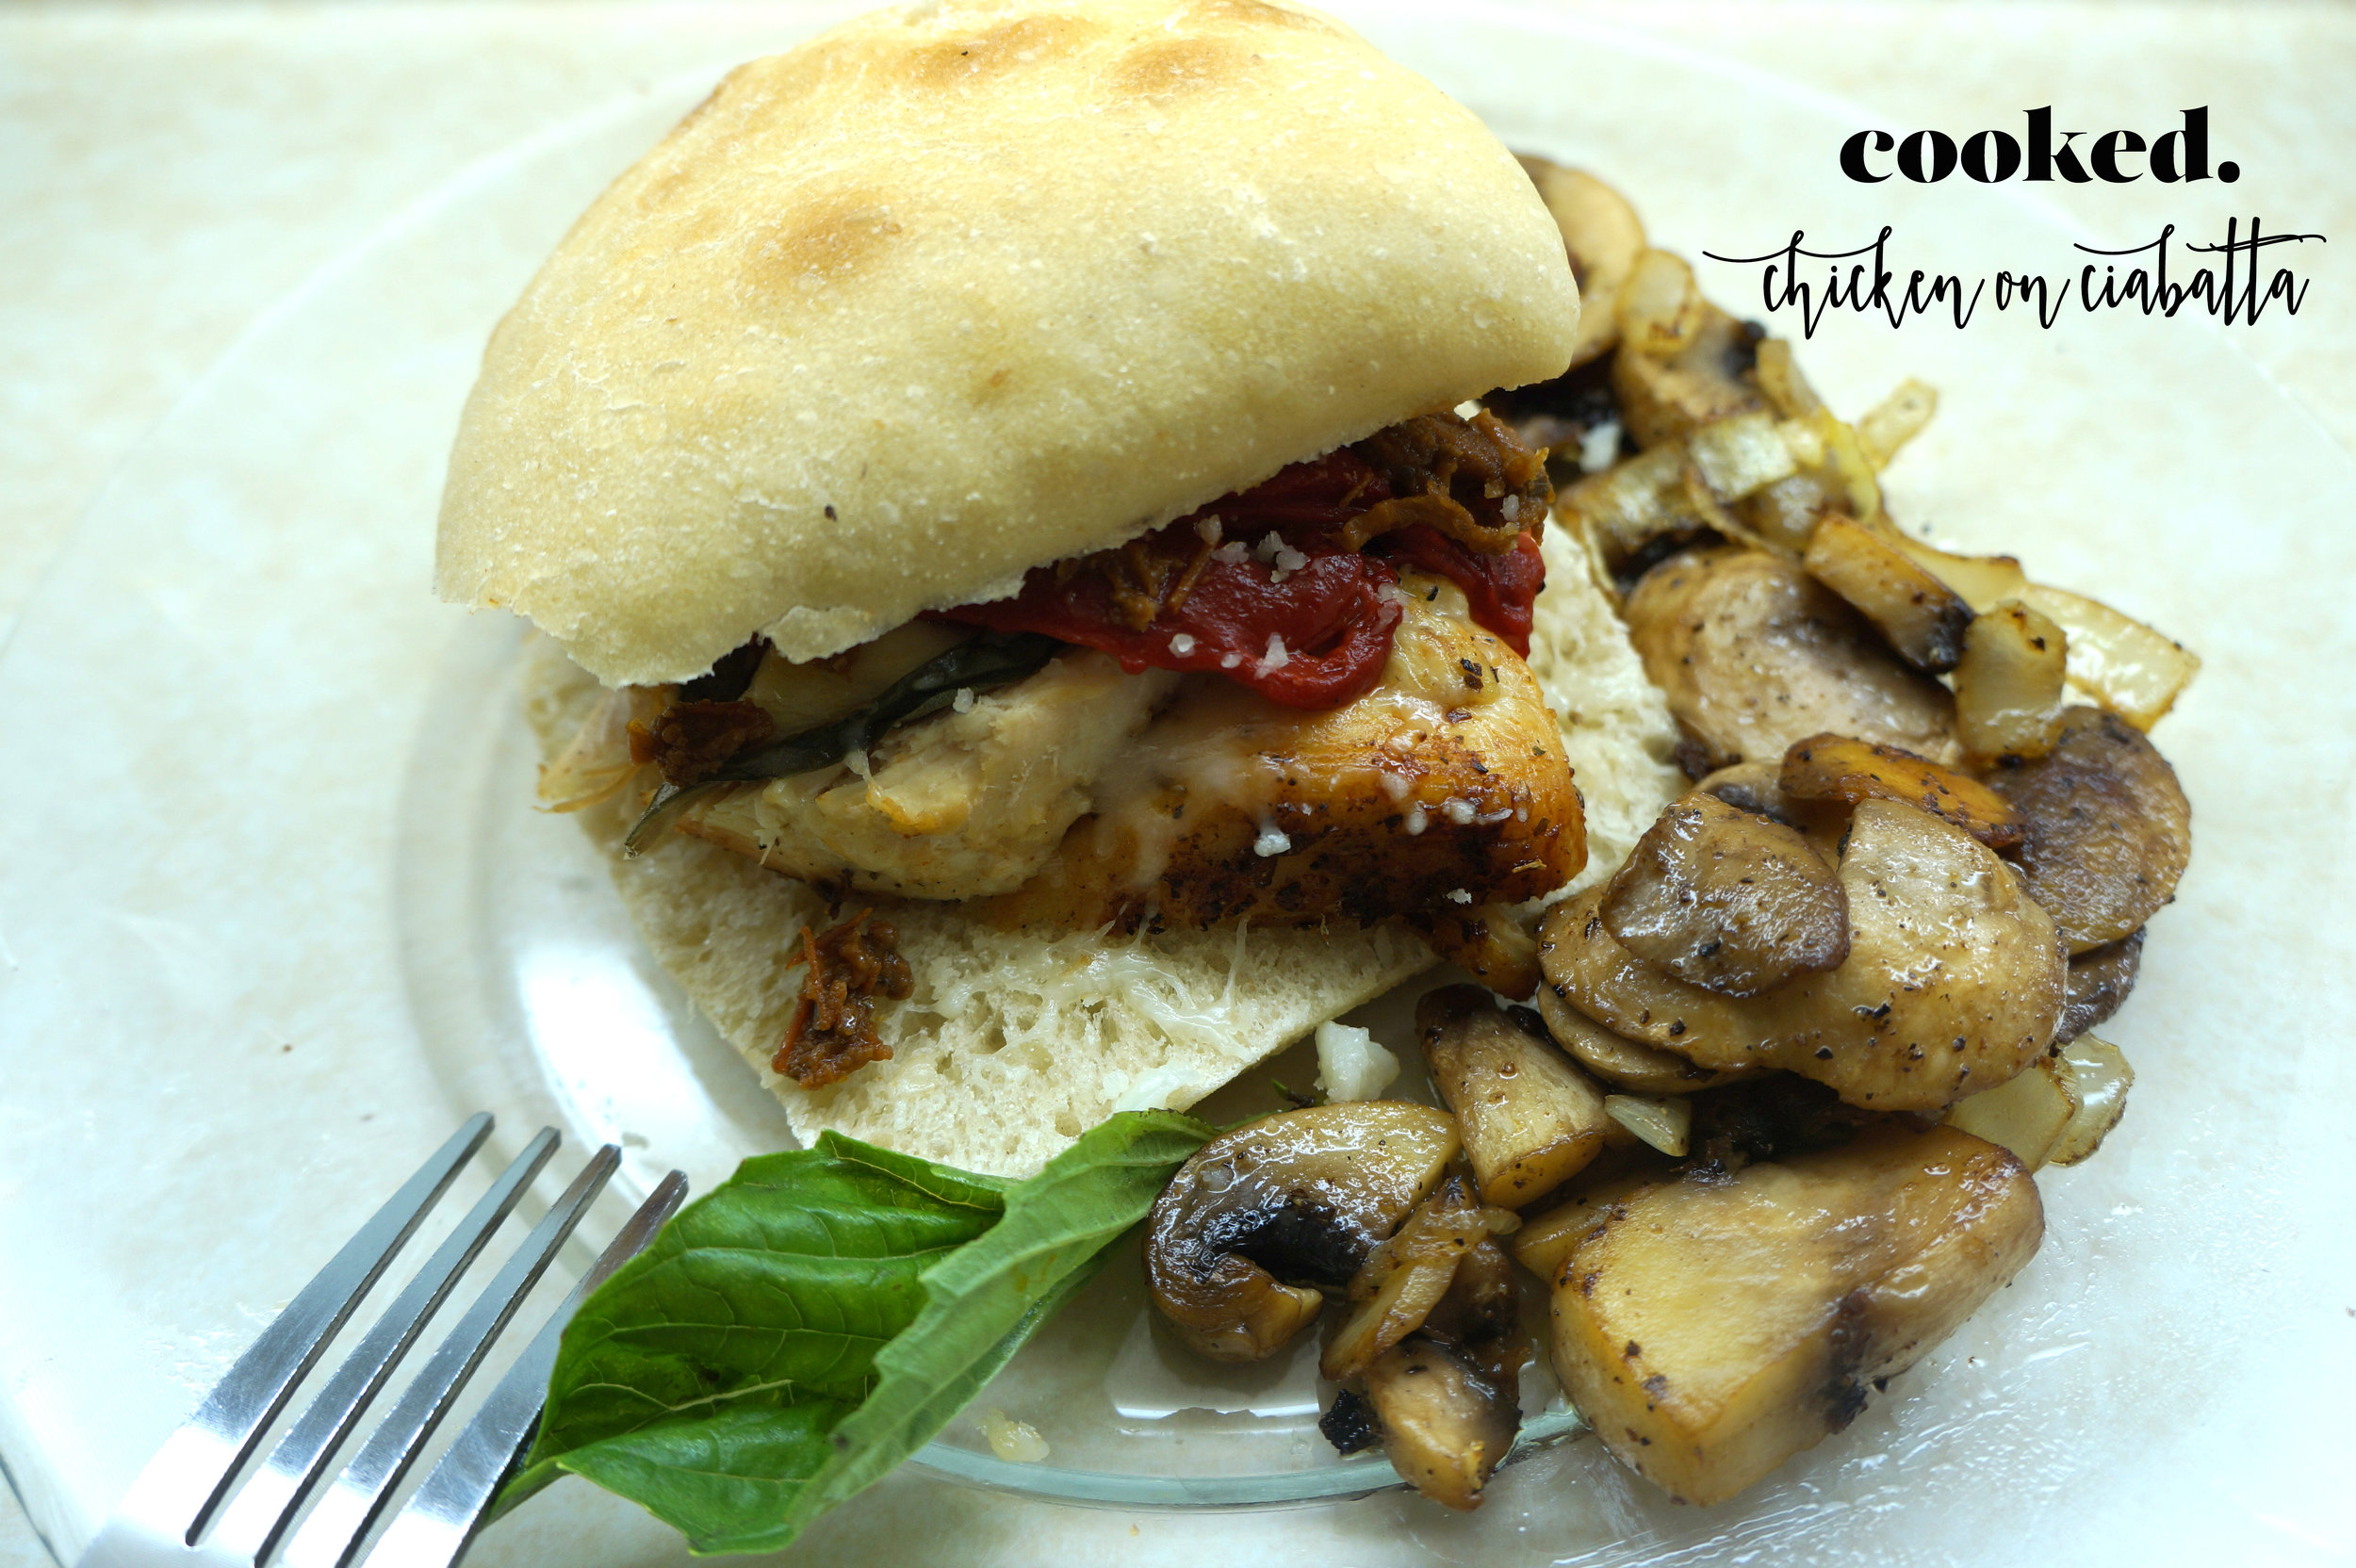 Andrea Fenise shares Italian Chicken with Sundried Tomato Pesto, Roasted Red Pepper and Mozarella Cheese on Ciabatta Roll